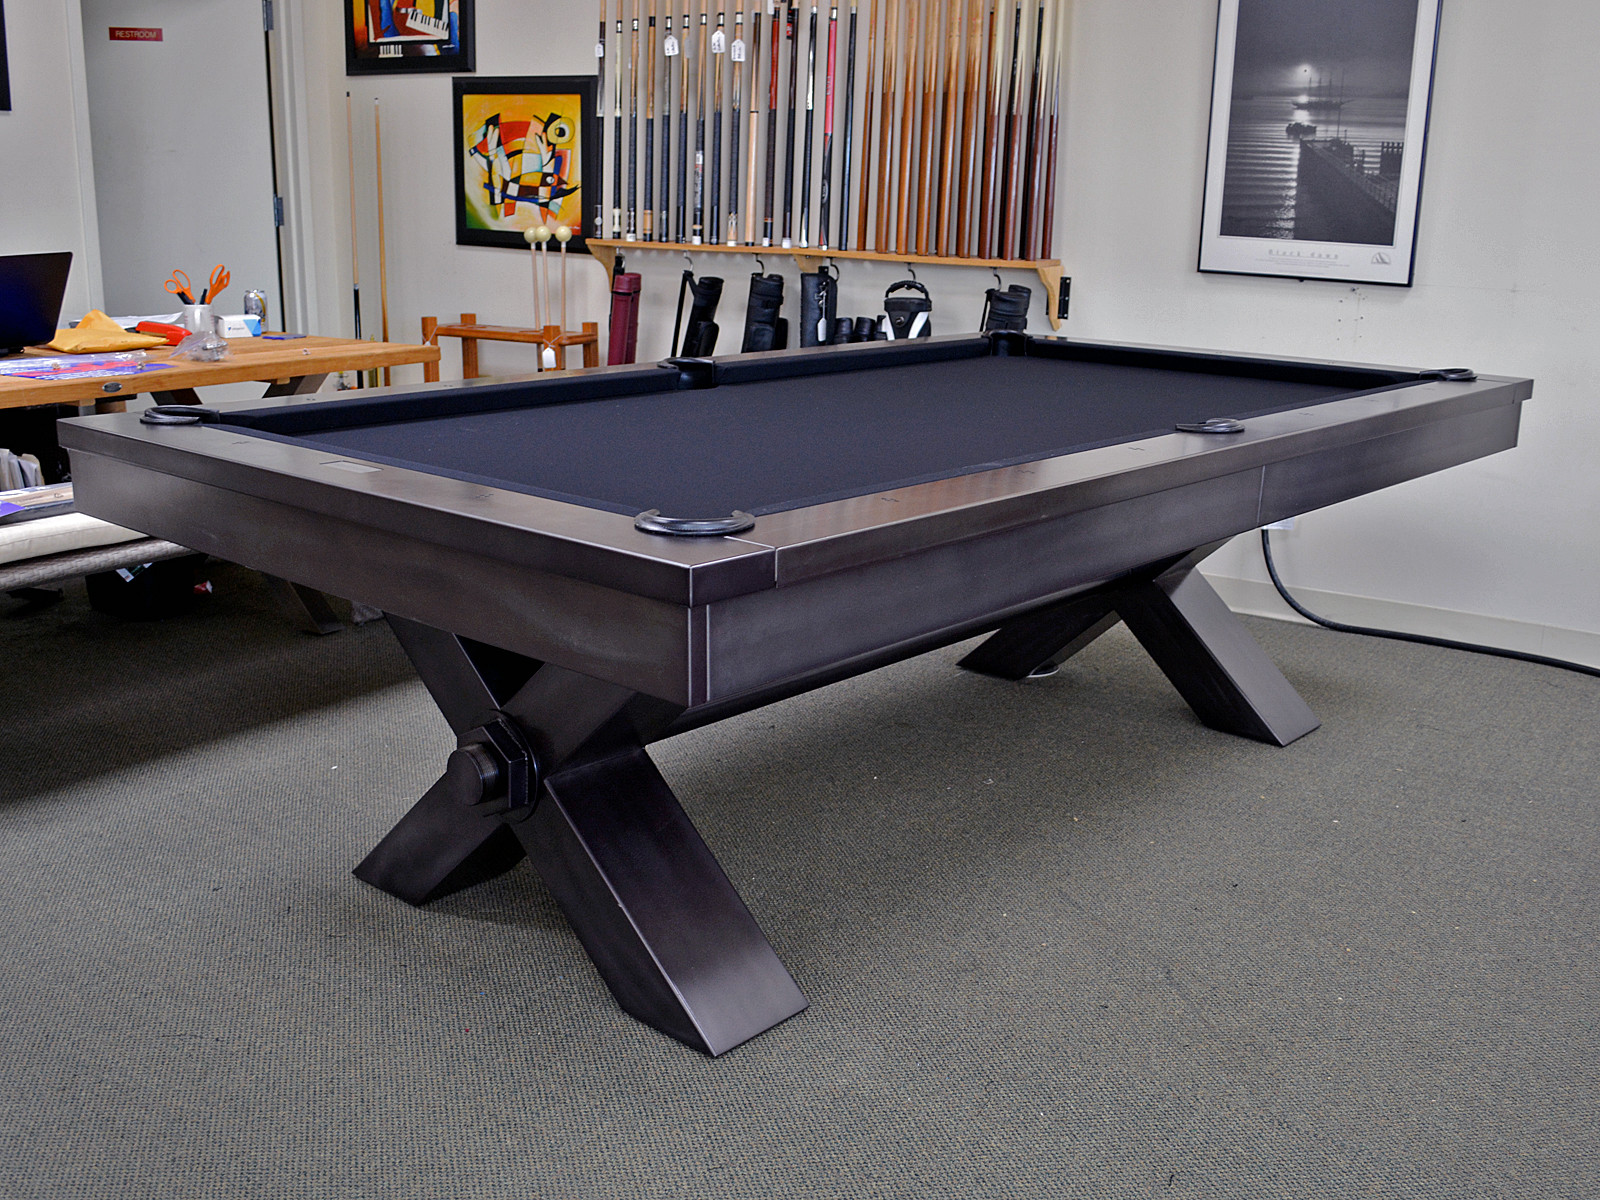 Vox Pool Table | Billiards N More